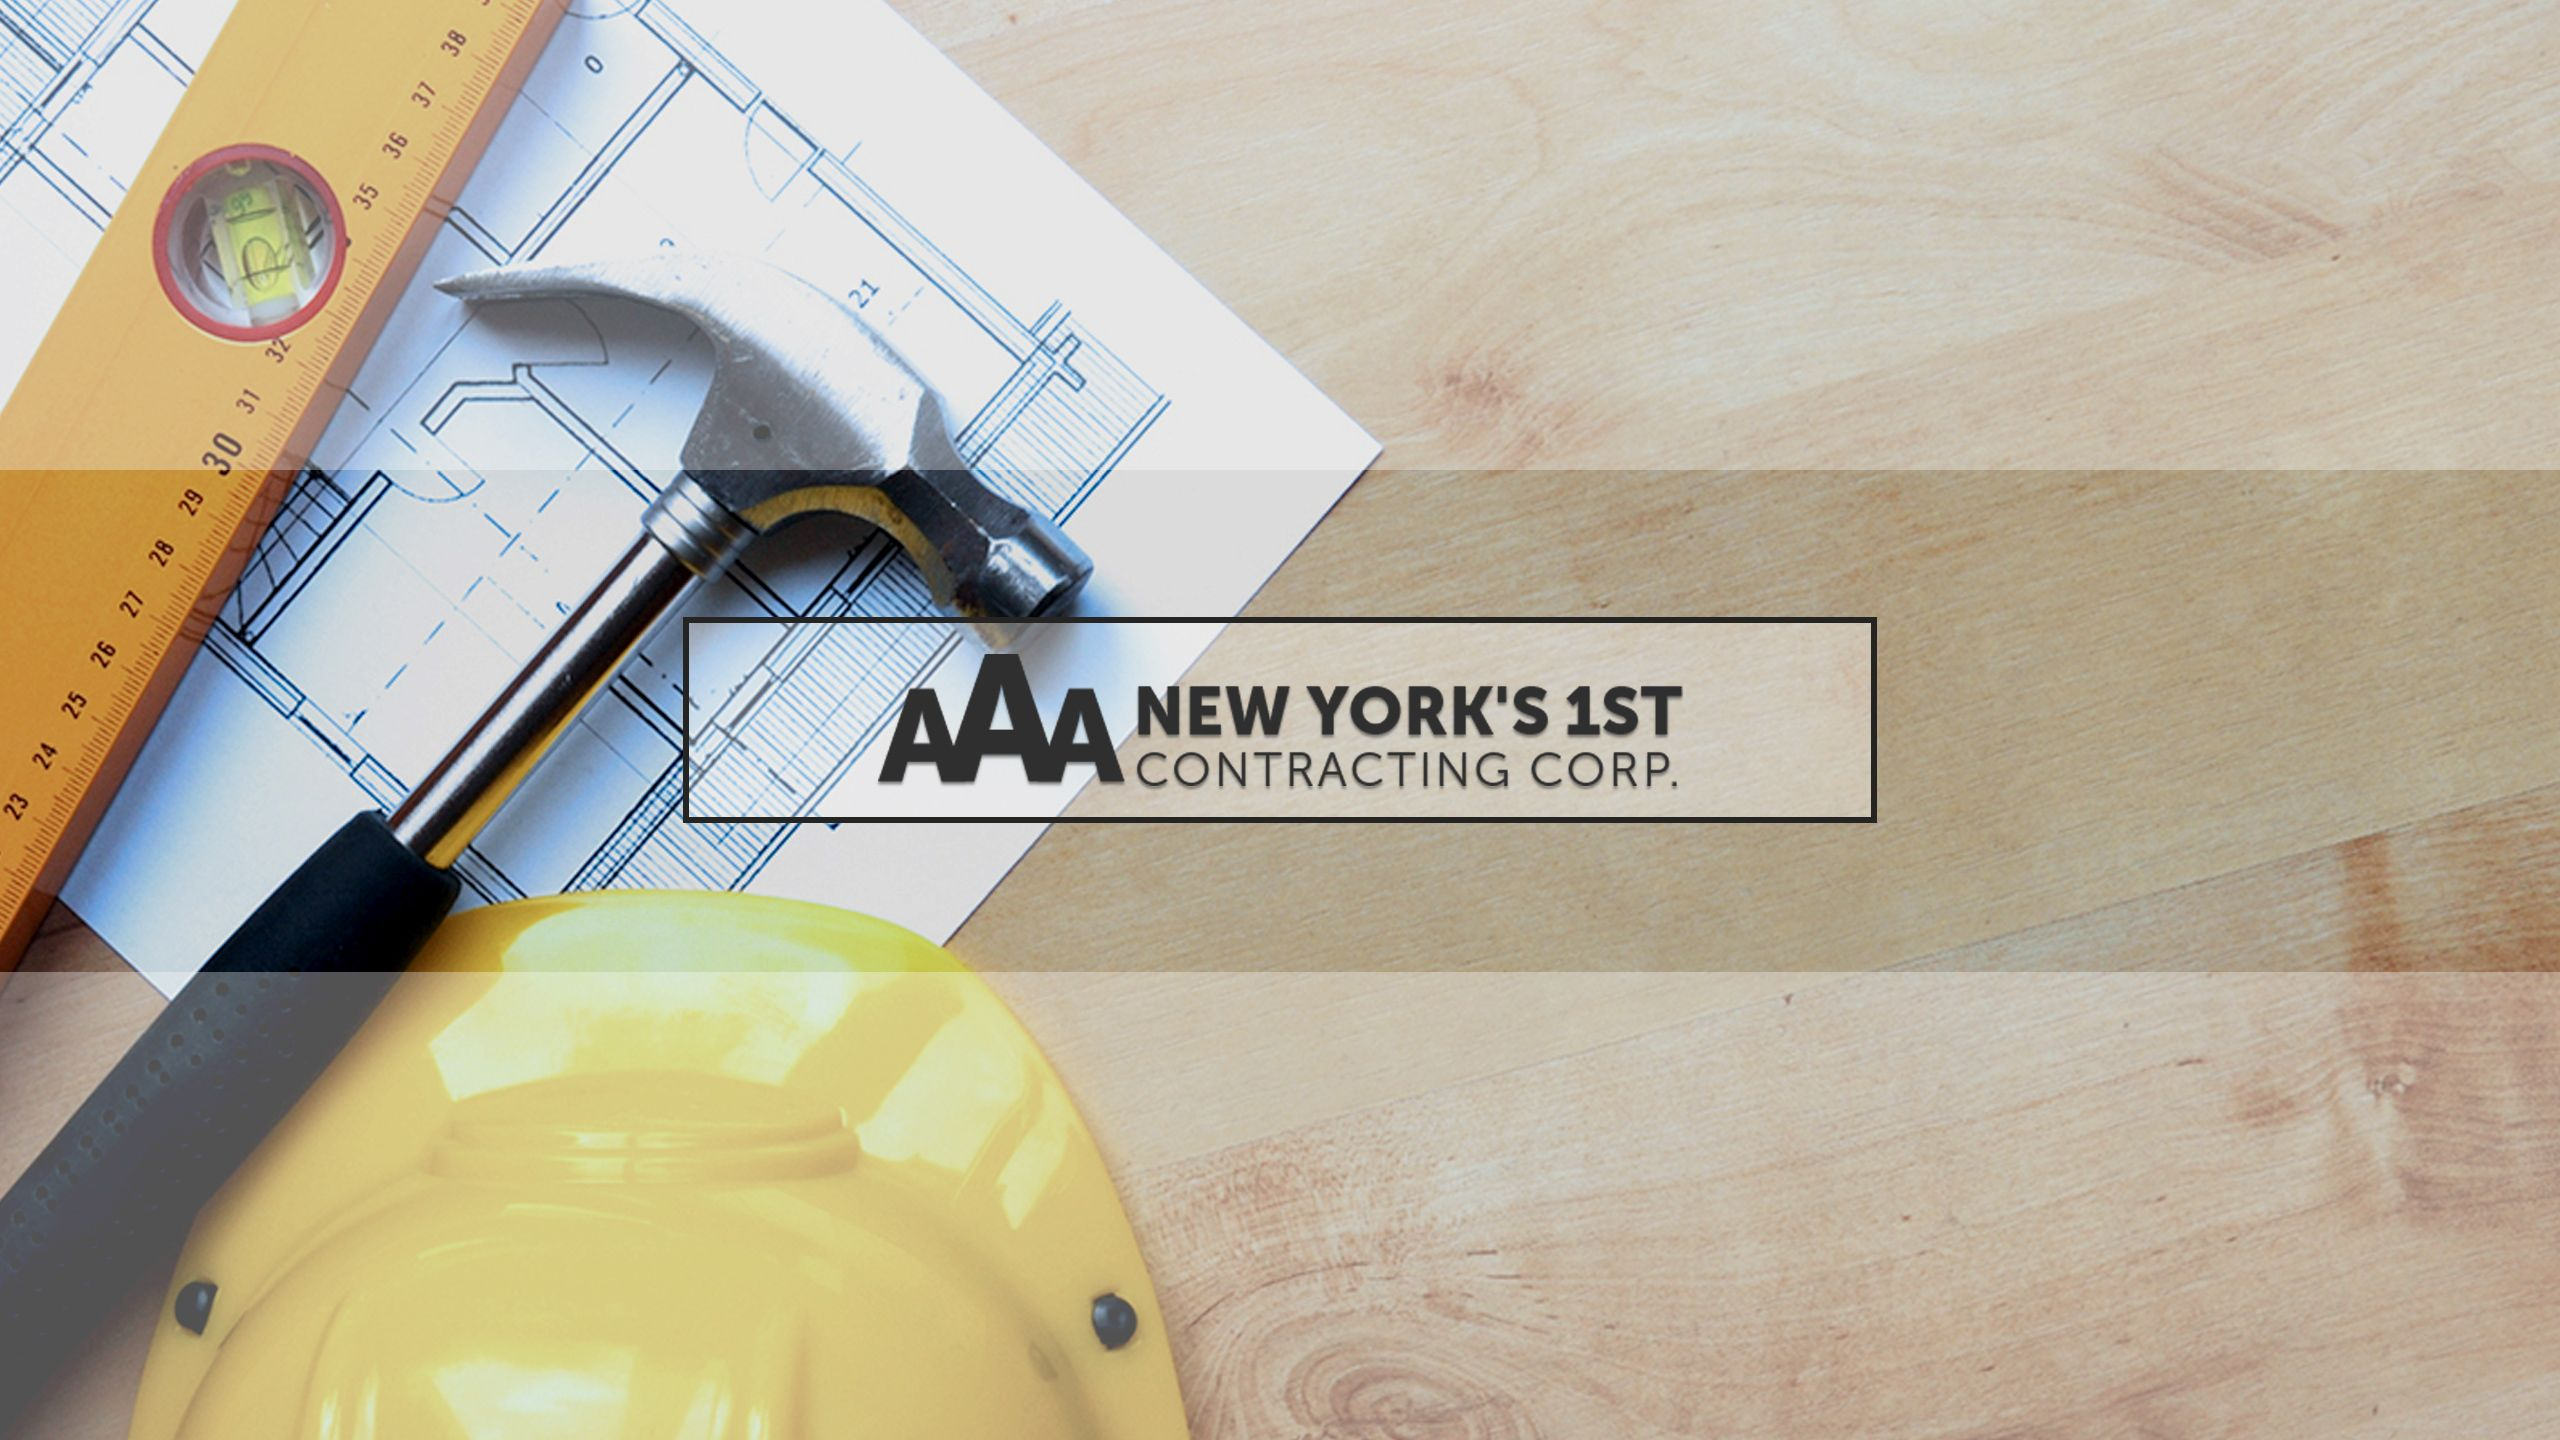 Brooklyn Remodeling Painting aaa new york's 1st contracting corp. is a roofing contractor in